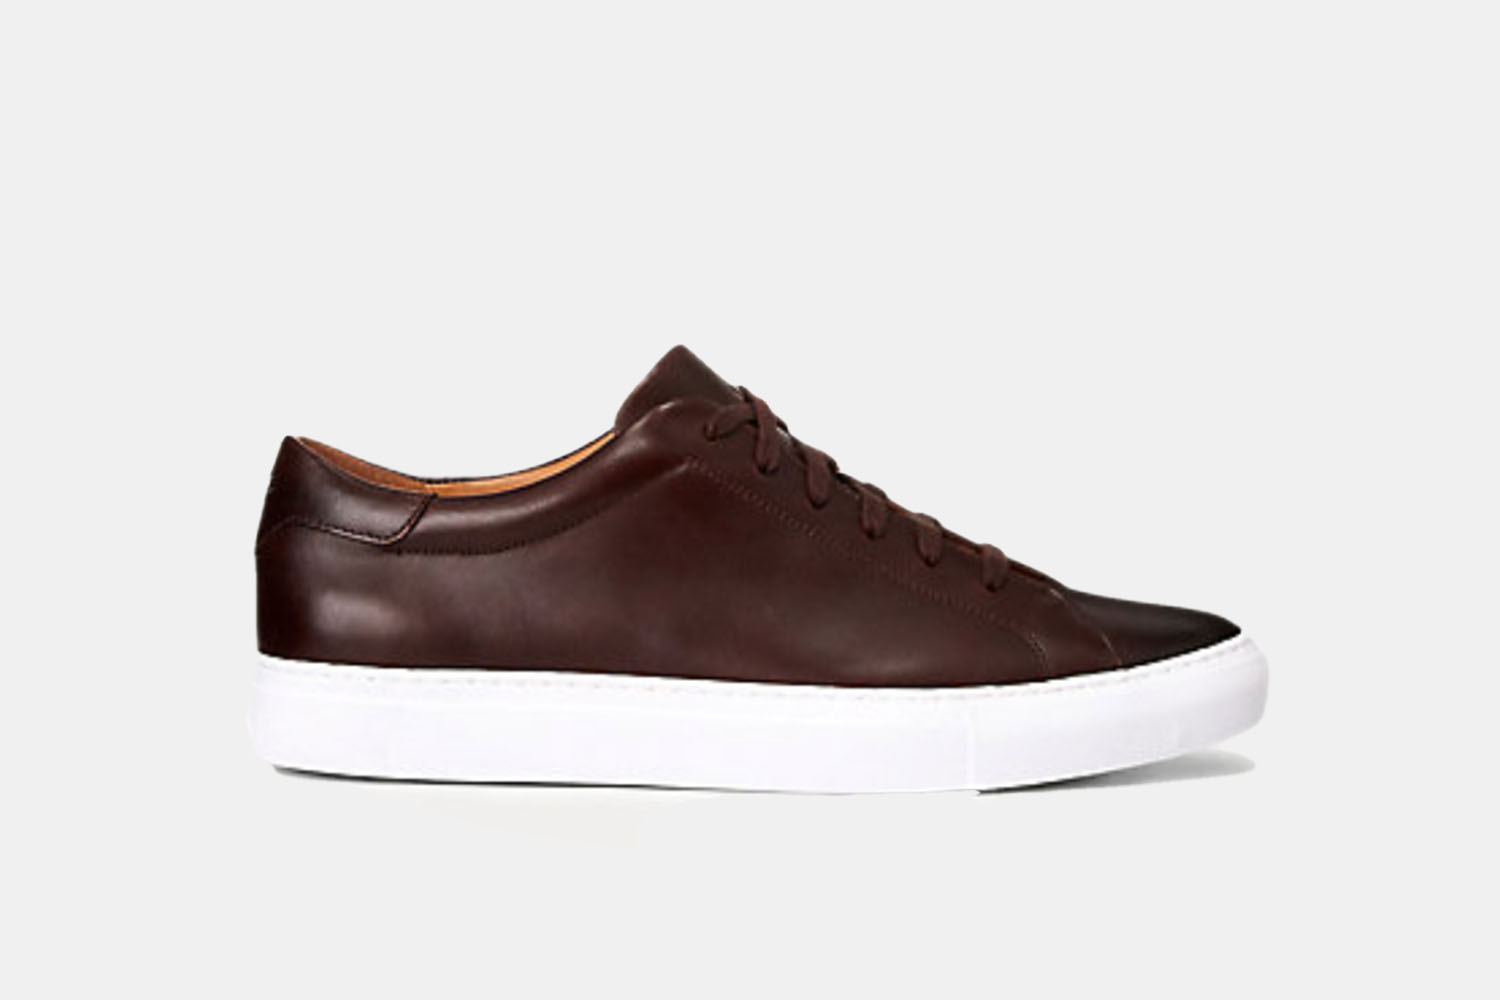 A dark brown leather and white soled sneaker.